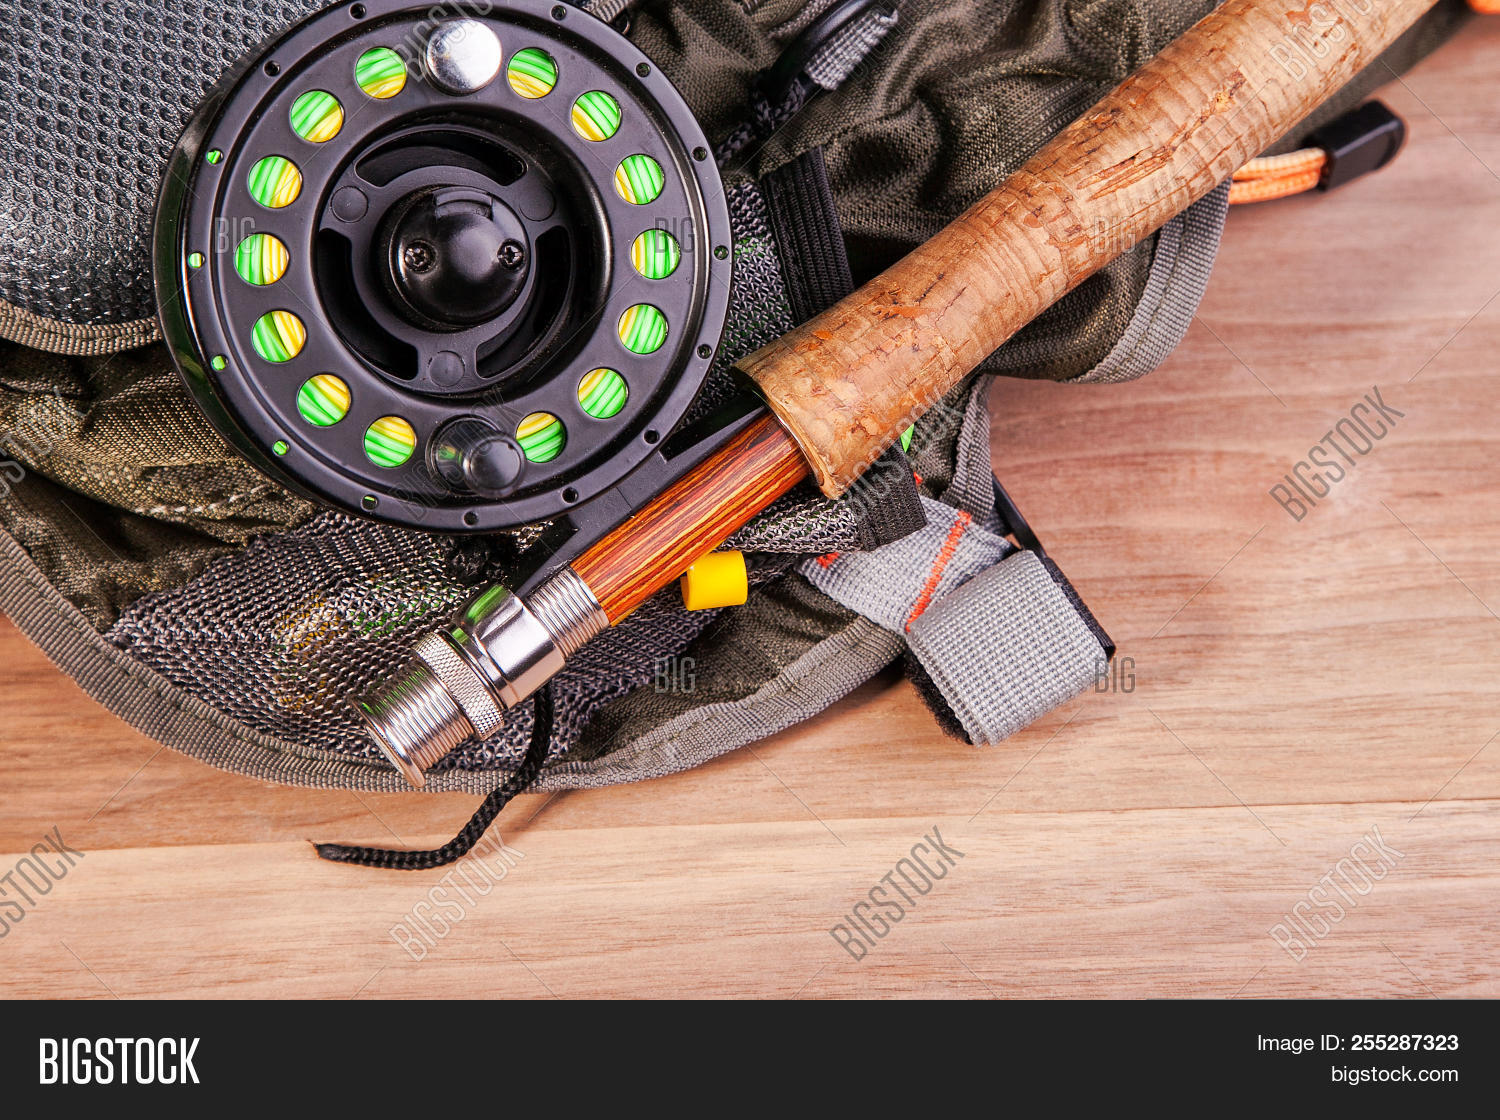 Fly Fishing Rod Coil Image Photo Free Trial Bigstock